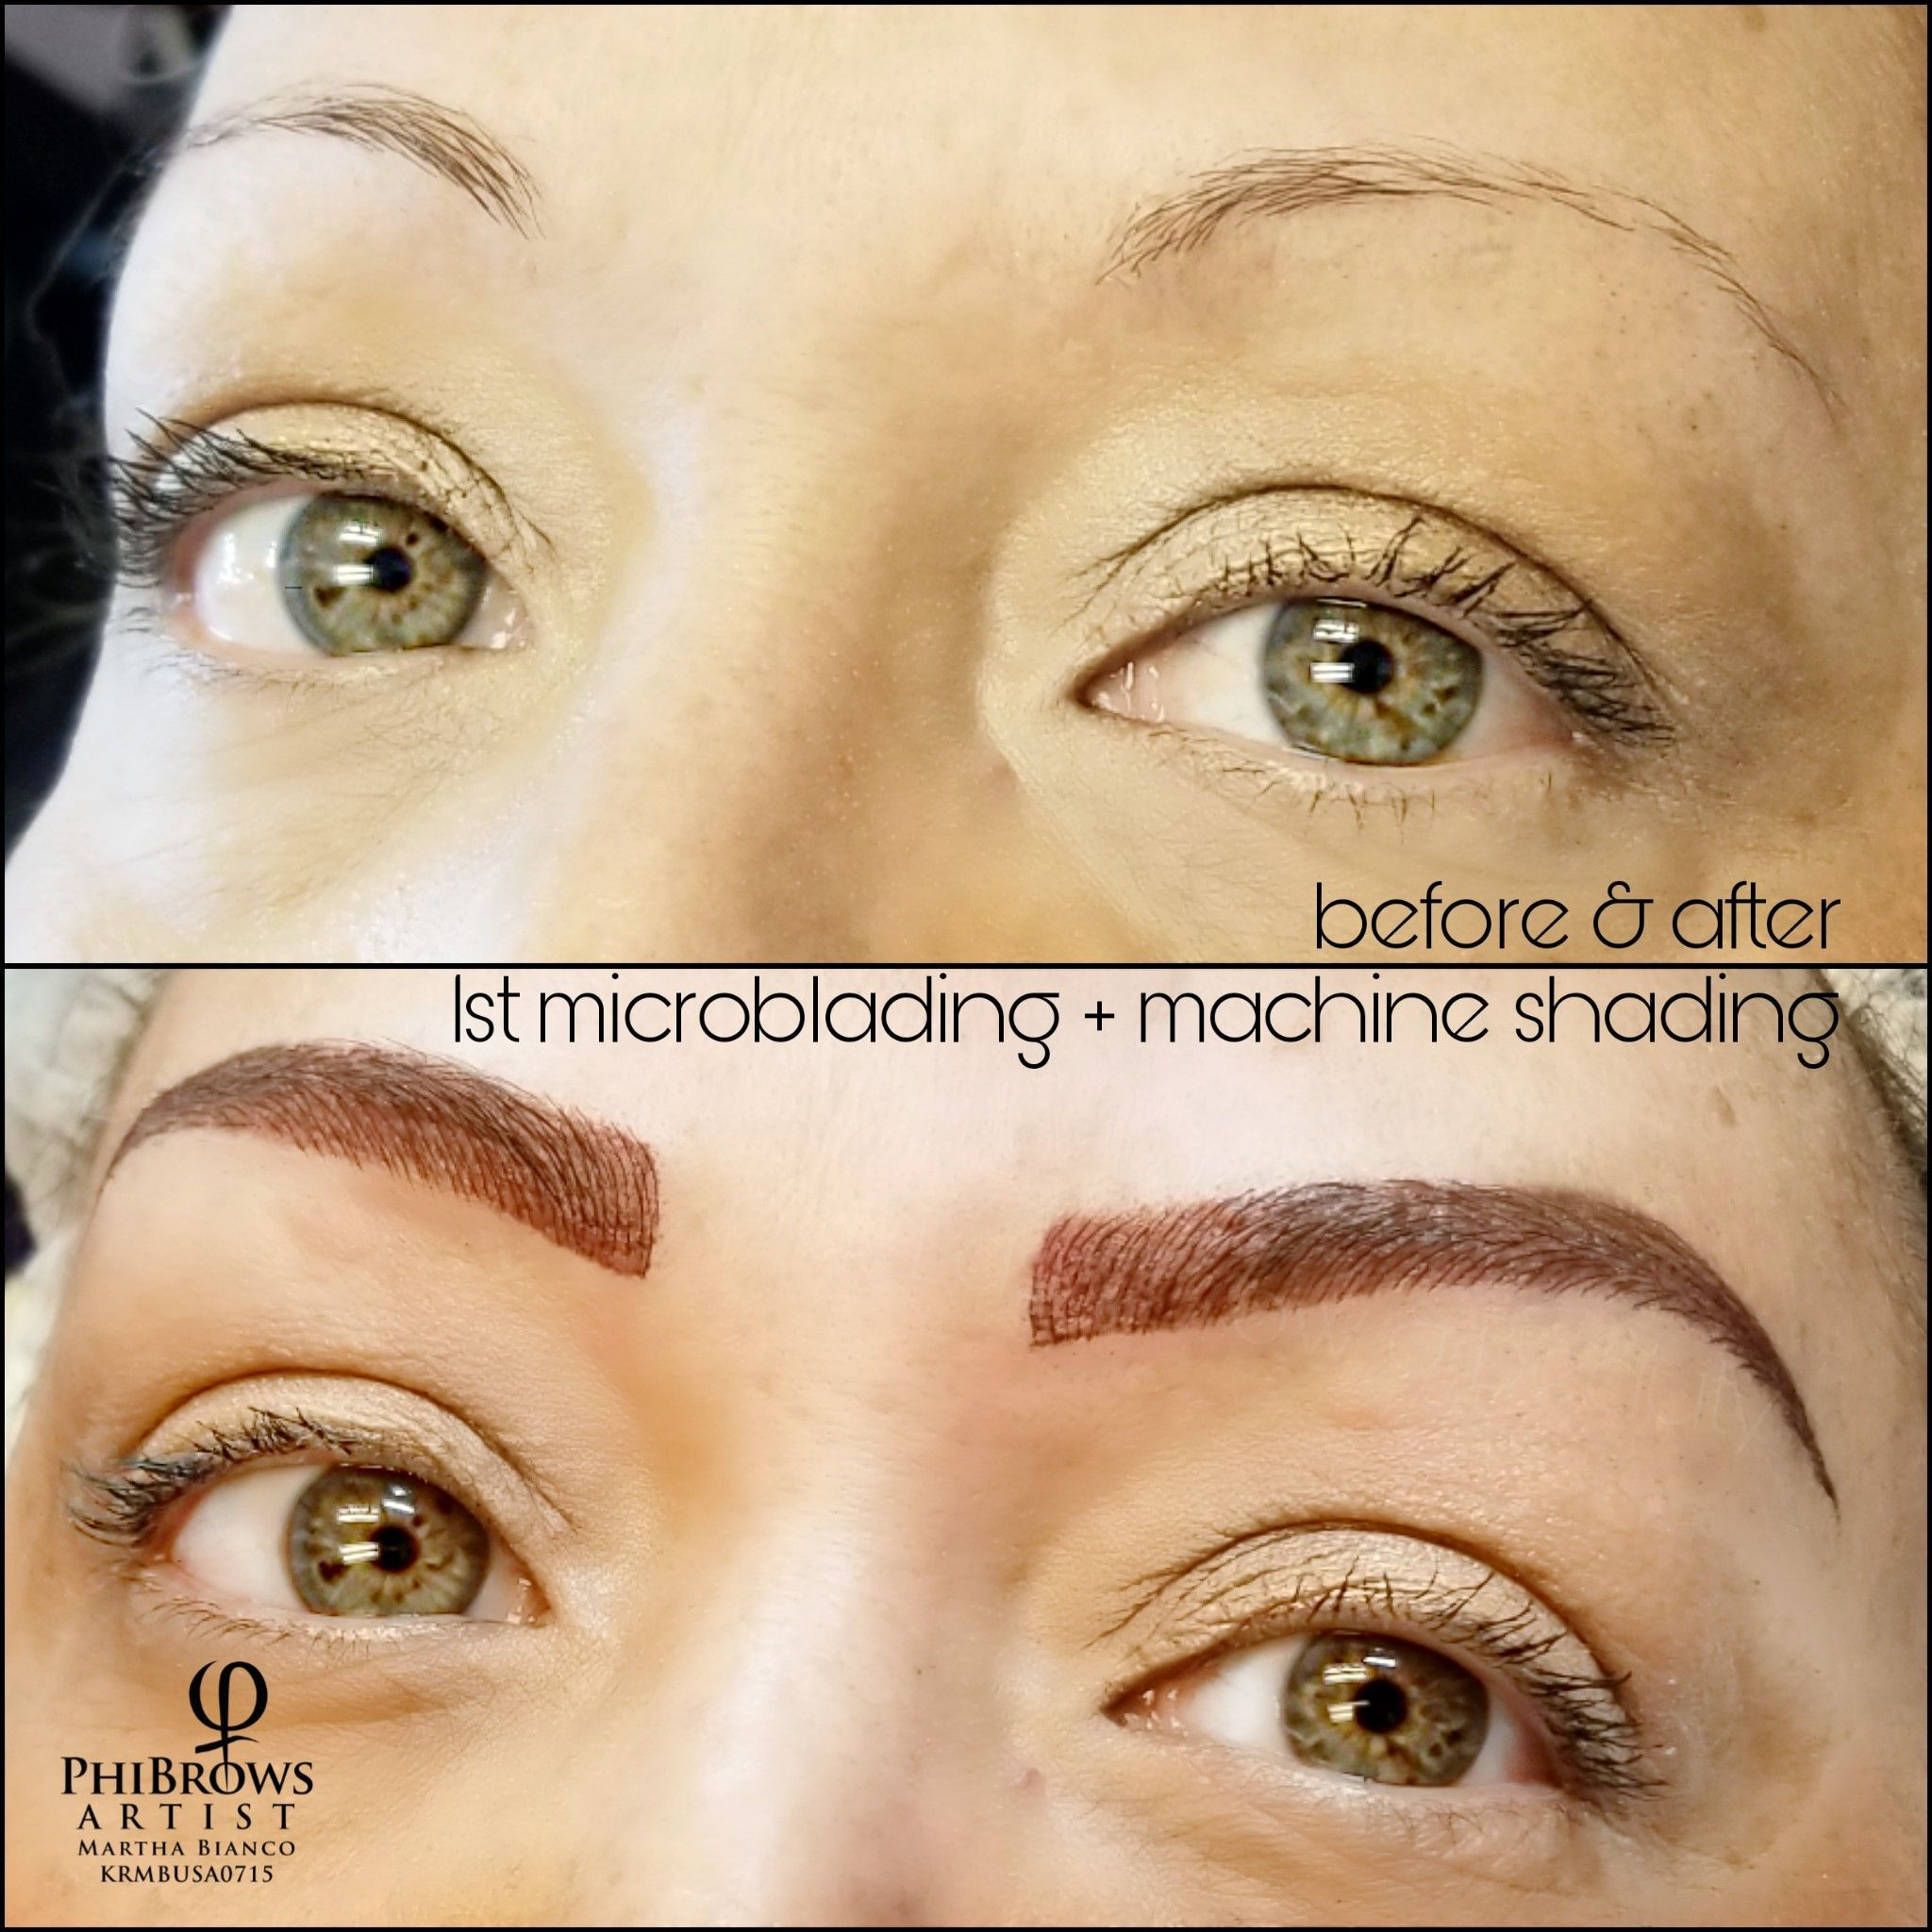 Another Blade & Shade (Microblading + Machine Shading). I